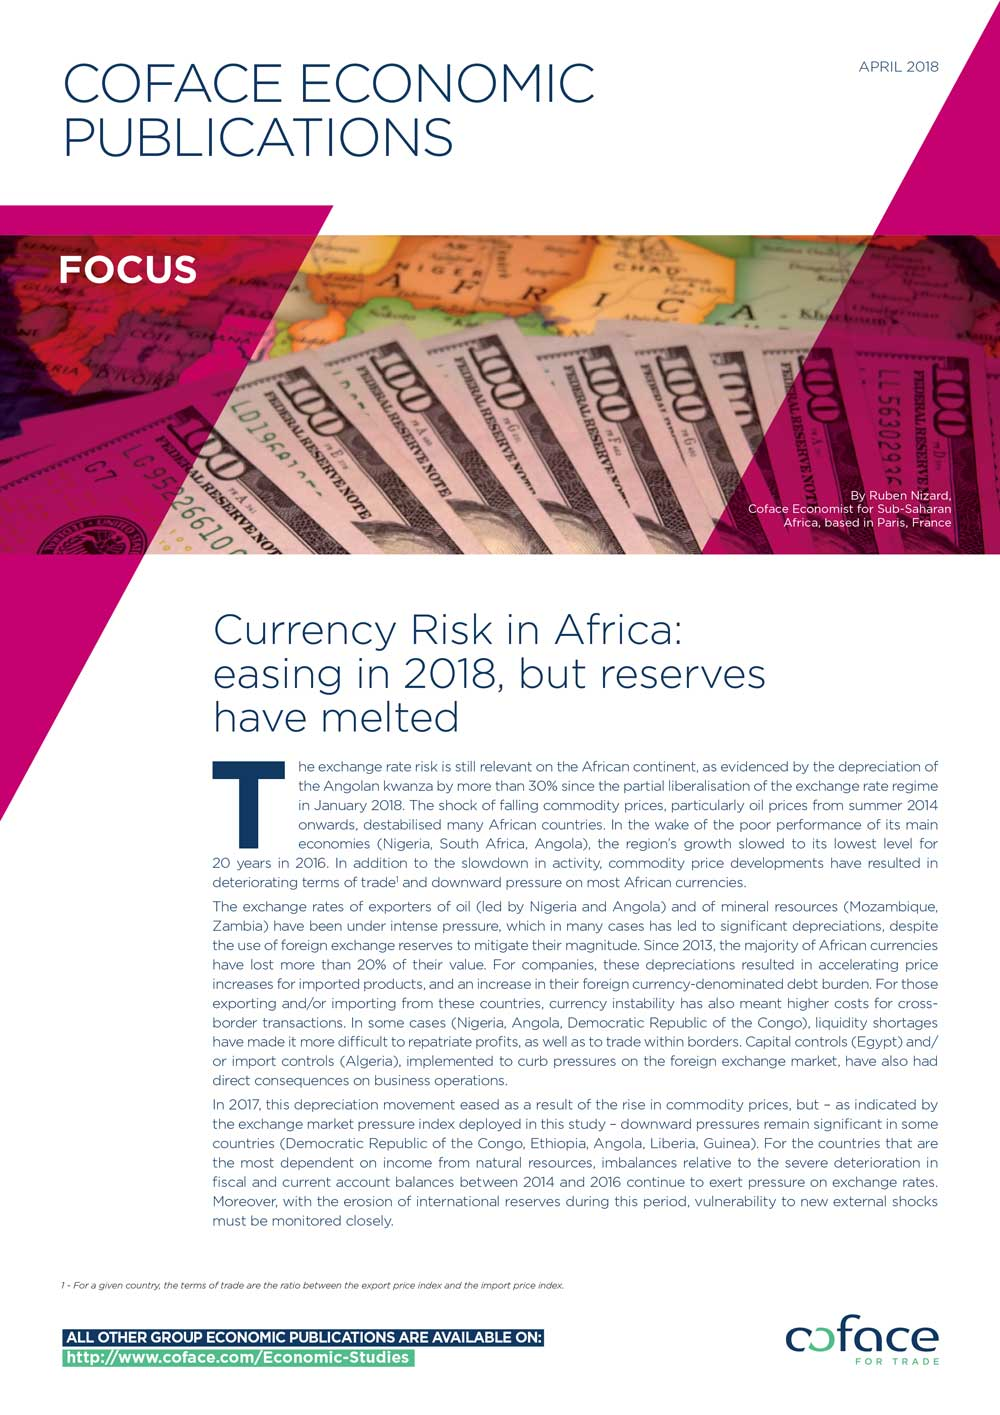 Currency Risk in Africa: easing in 2018, but reserves have melted